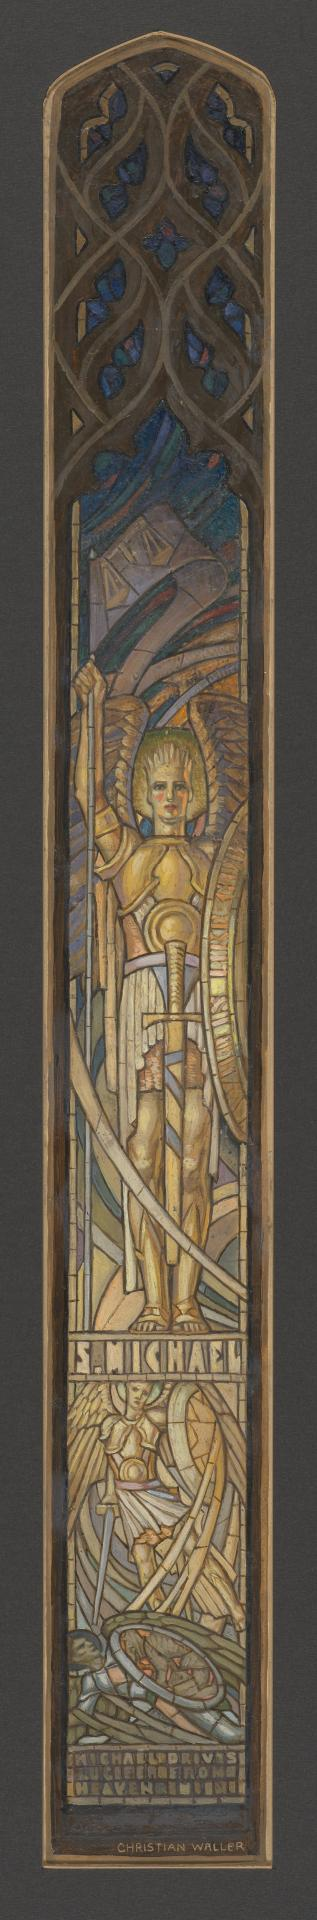 Design for a window at Scotch College chapel, Melbourne: St Michael drives Lucifer from Heaven